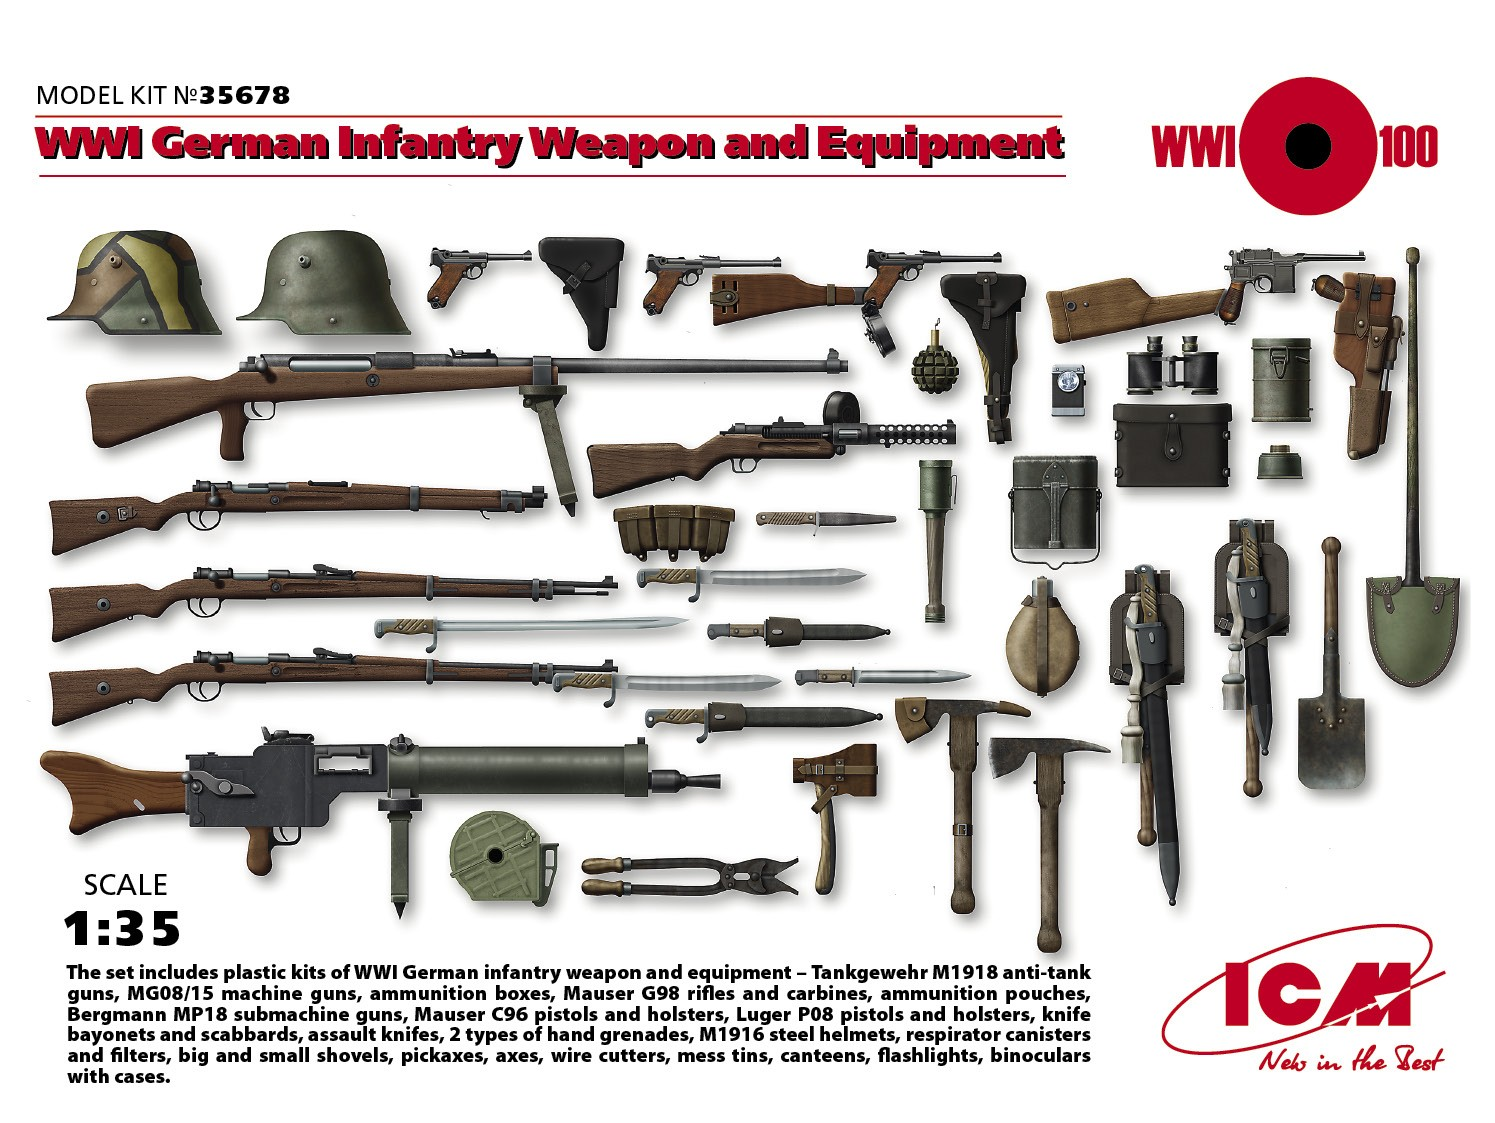 weapons of ww1 - Khafre